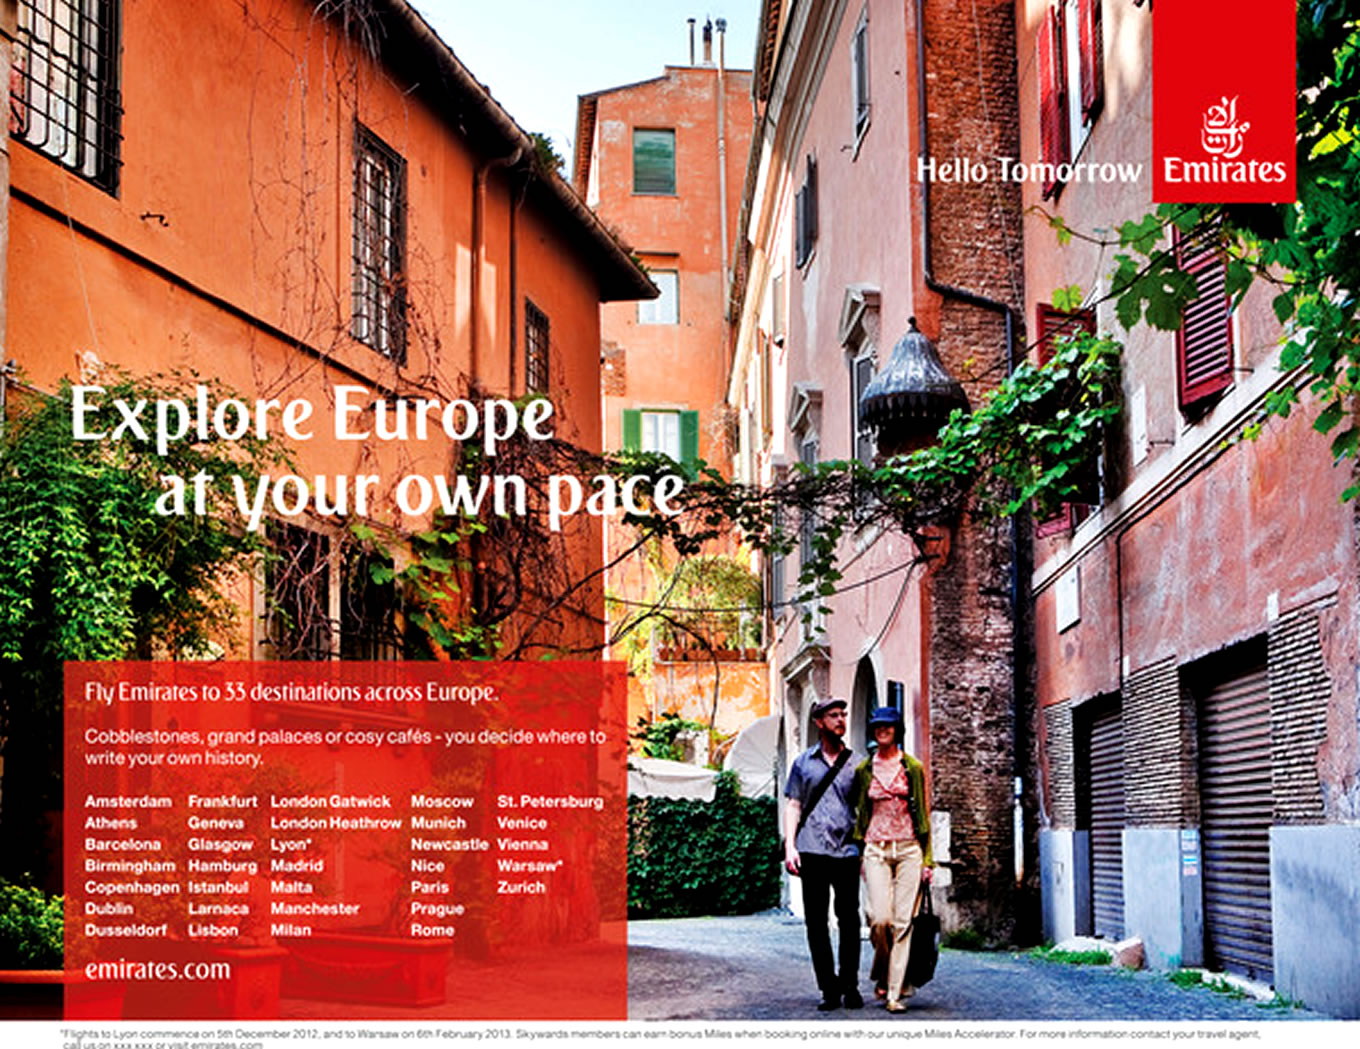 Destination Europe, Hello Tomorrow Marketing Campaign by Emirates Airlines